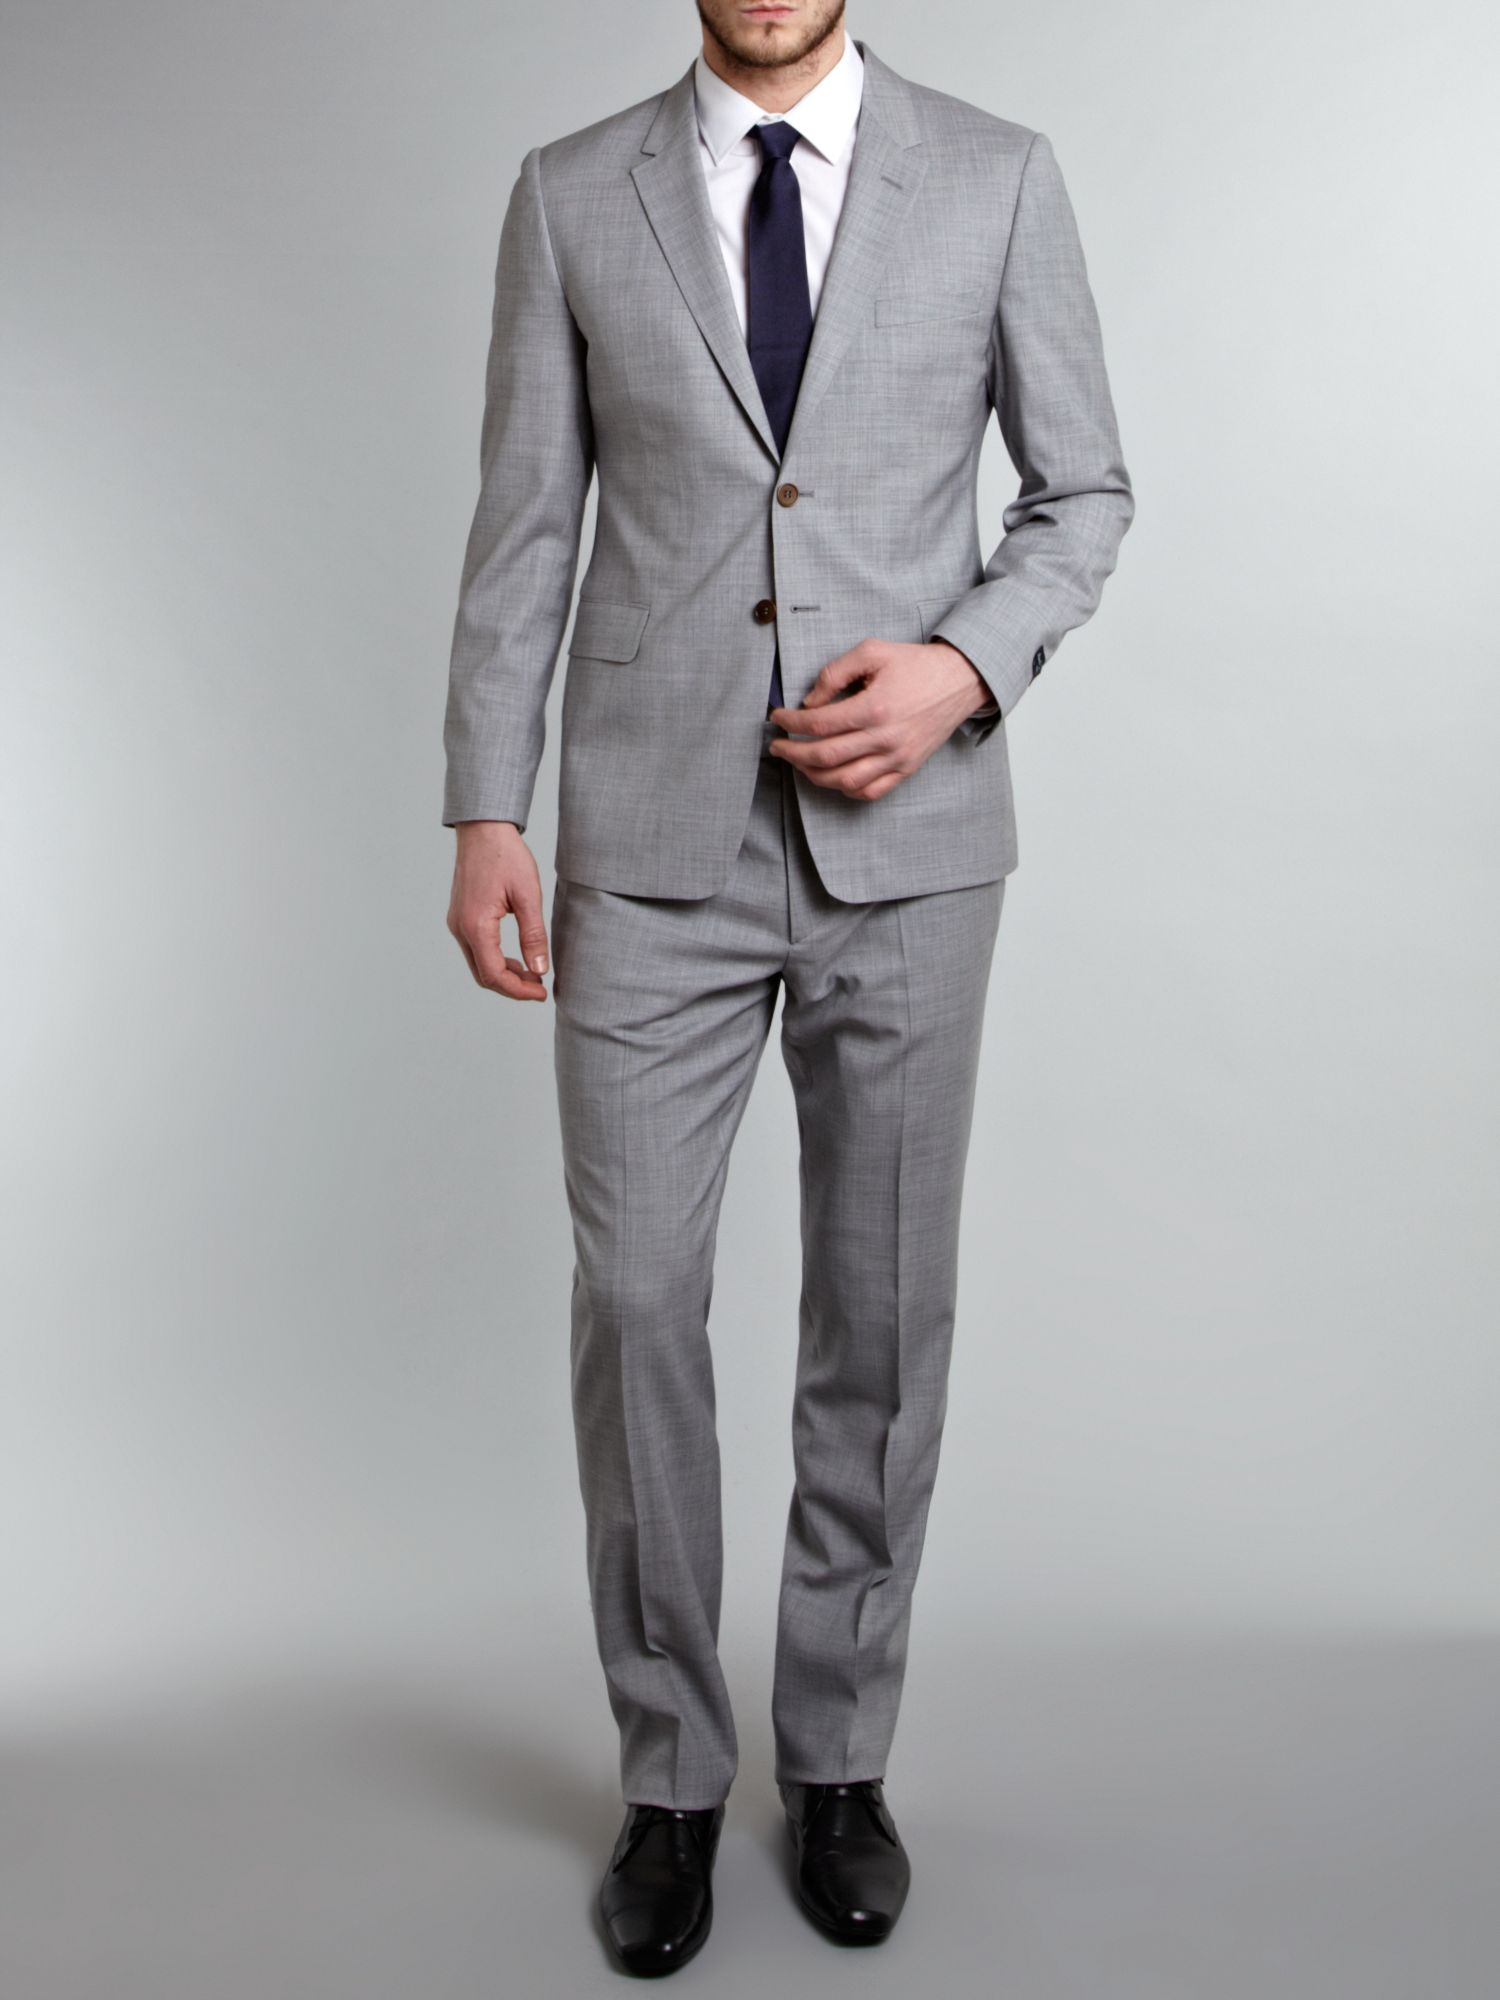 Paul smith Textured Marl Suit in Gray for Men | Lyst